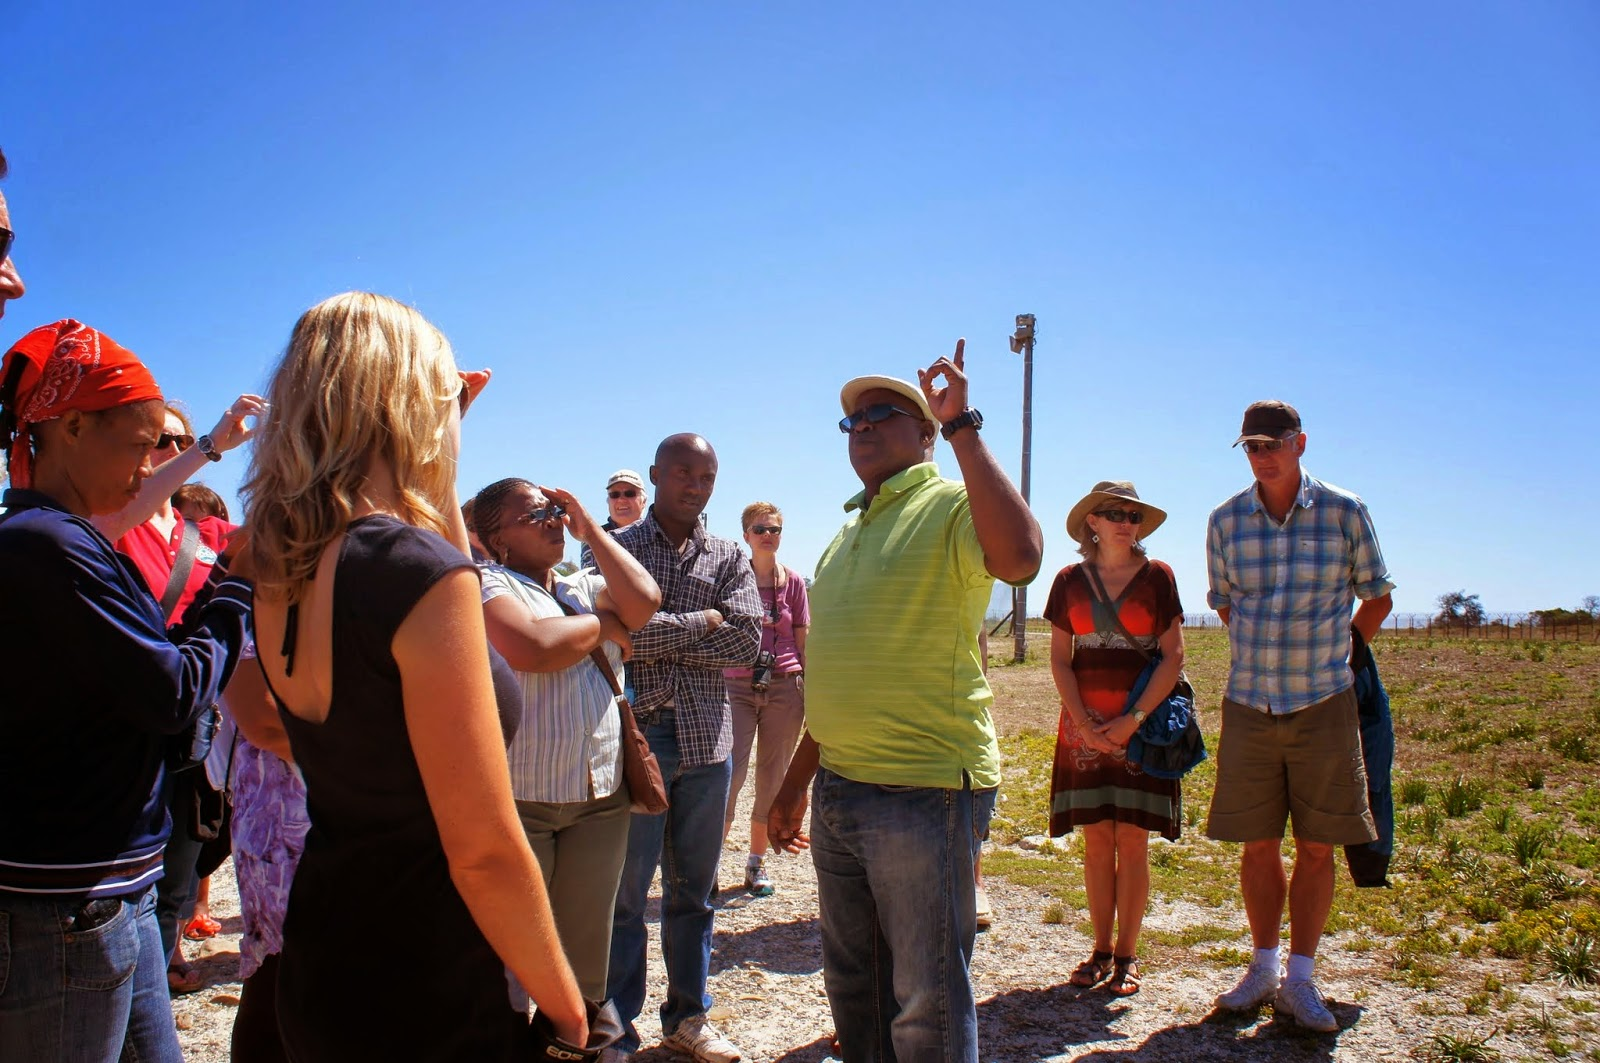 Robben Island - Our tour guide was a former inmate